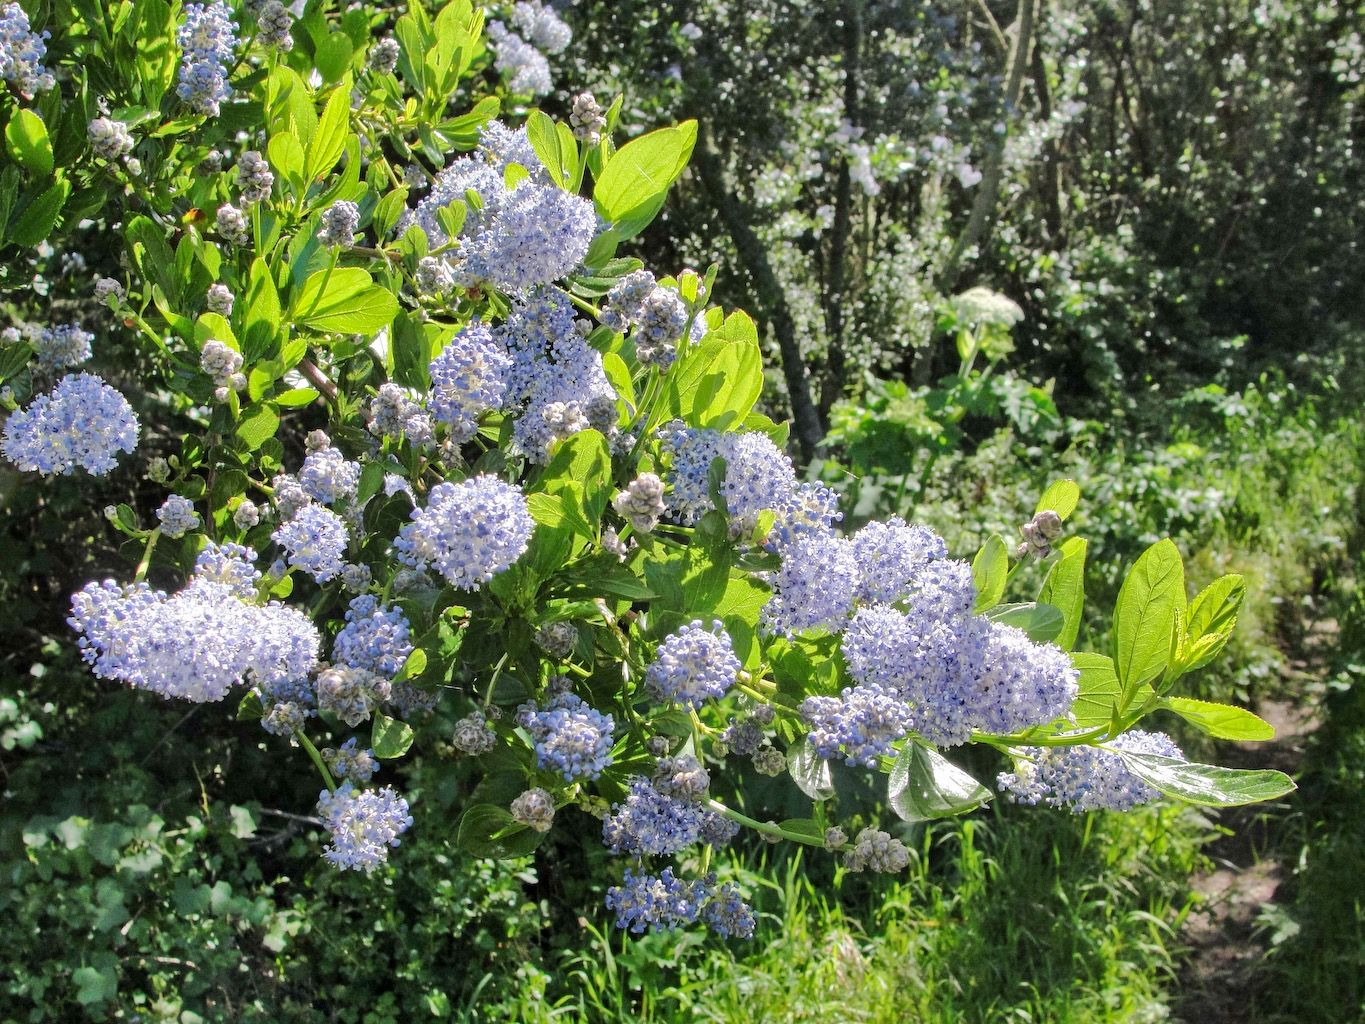 Blue Blossom Pollinator Friendly Plants For The Pacific Northwest Gardening Evergreen Flowering Shrubs Fast Growing Flowers California Lilac